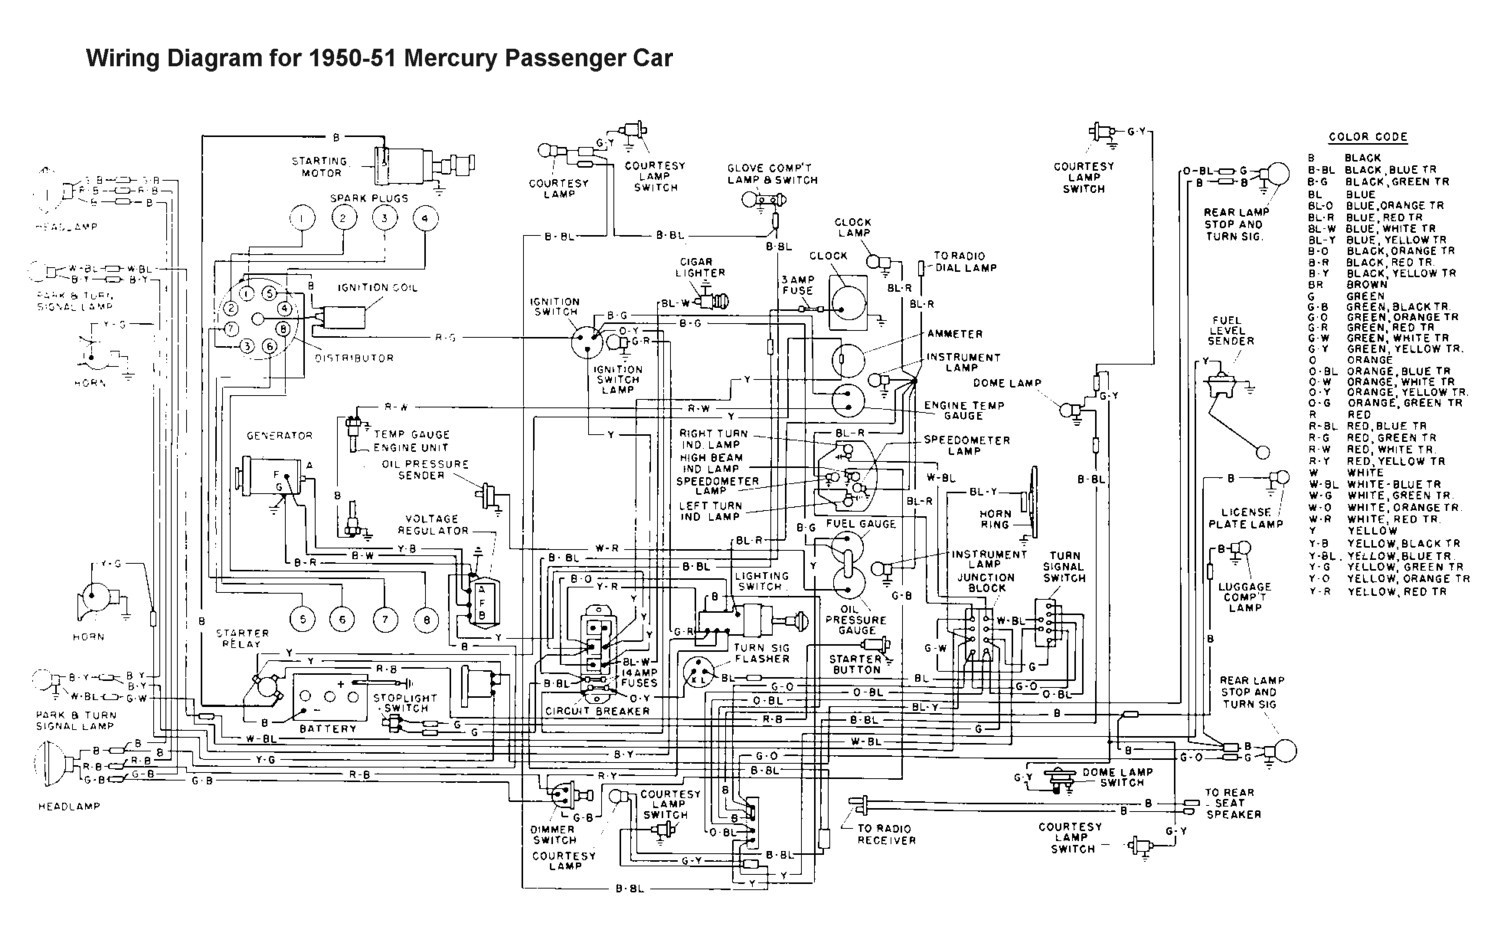 flathead electrical wiring diagrams rh vanpeltsales com Mercury 60 HP Wiring Diagram Mercury 200 Outboard Wiring Diagram